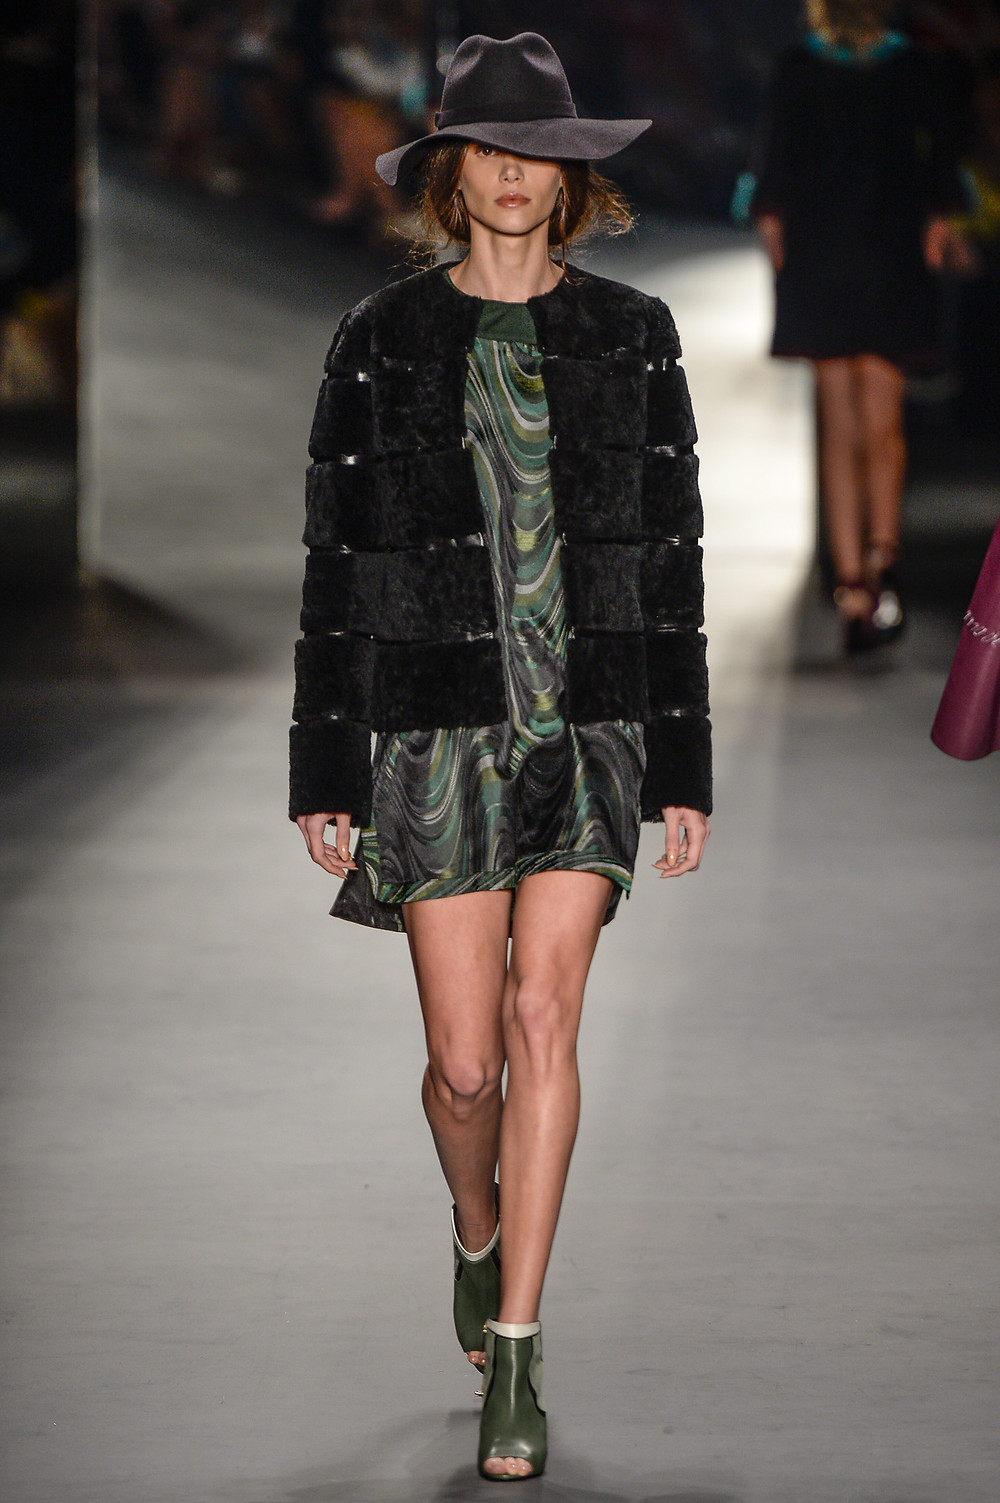 lilly-sarti-spfw-inverno2015-11.jpg